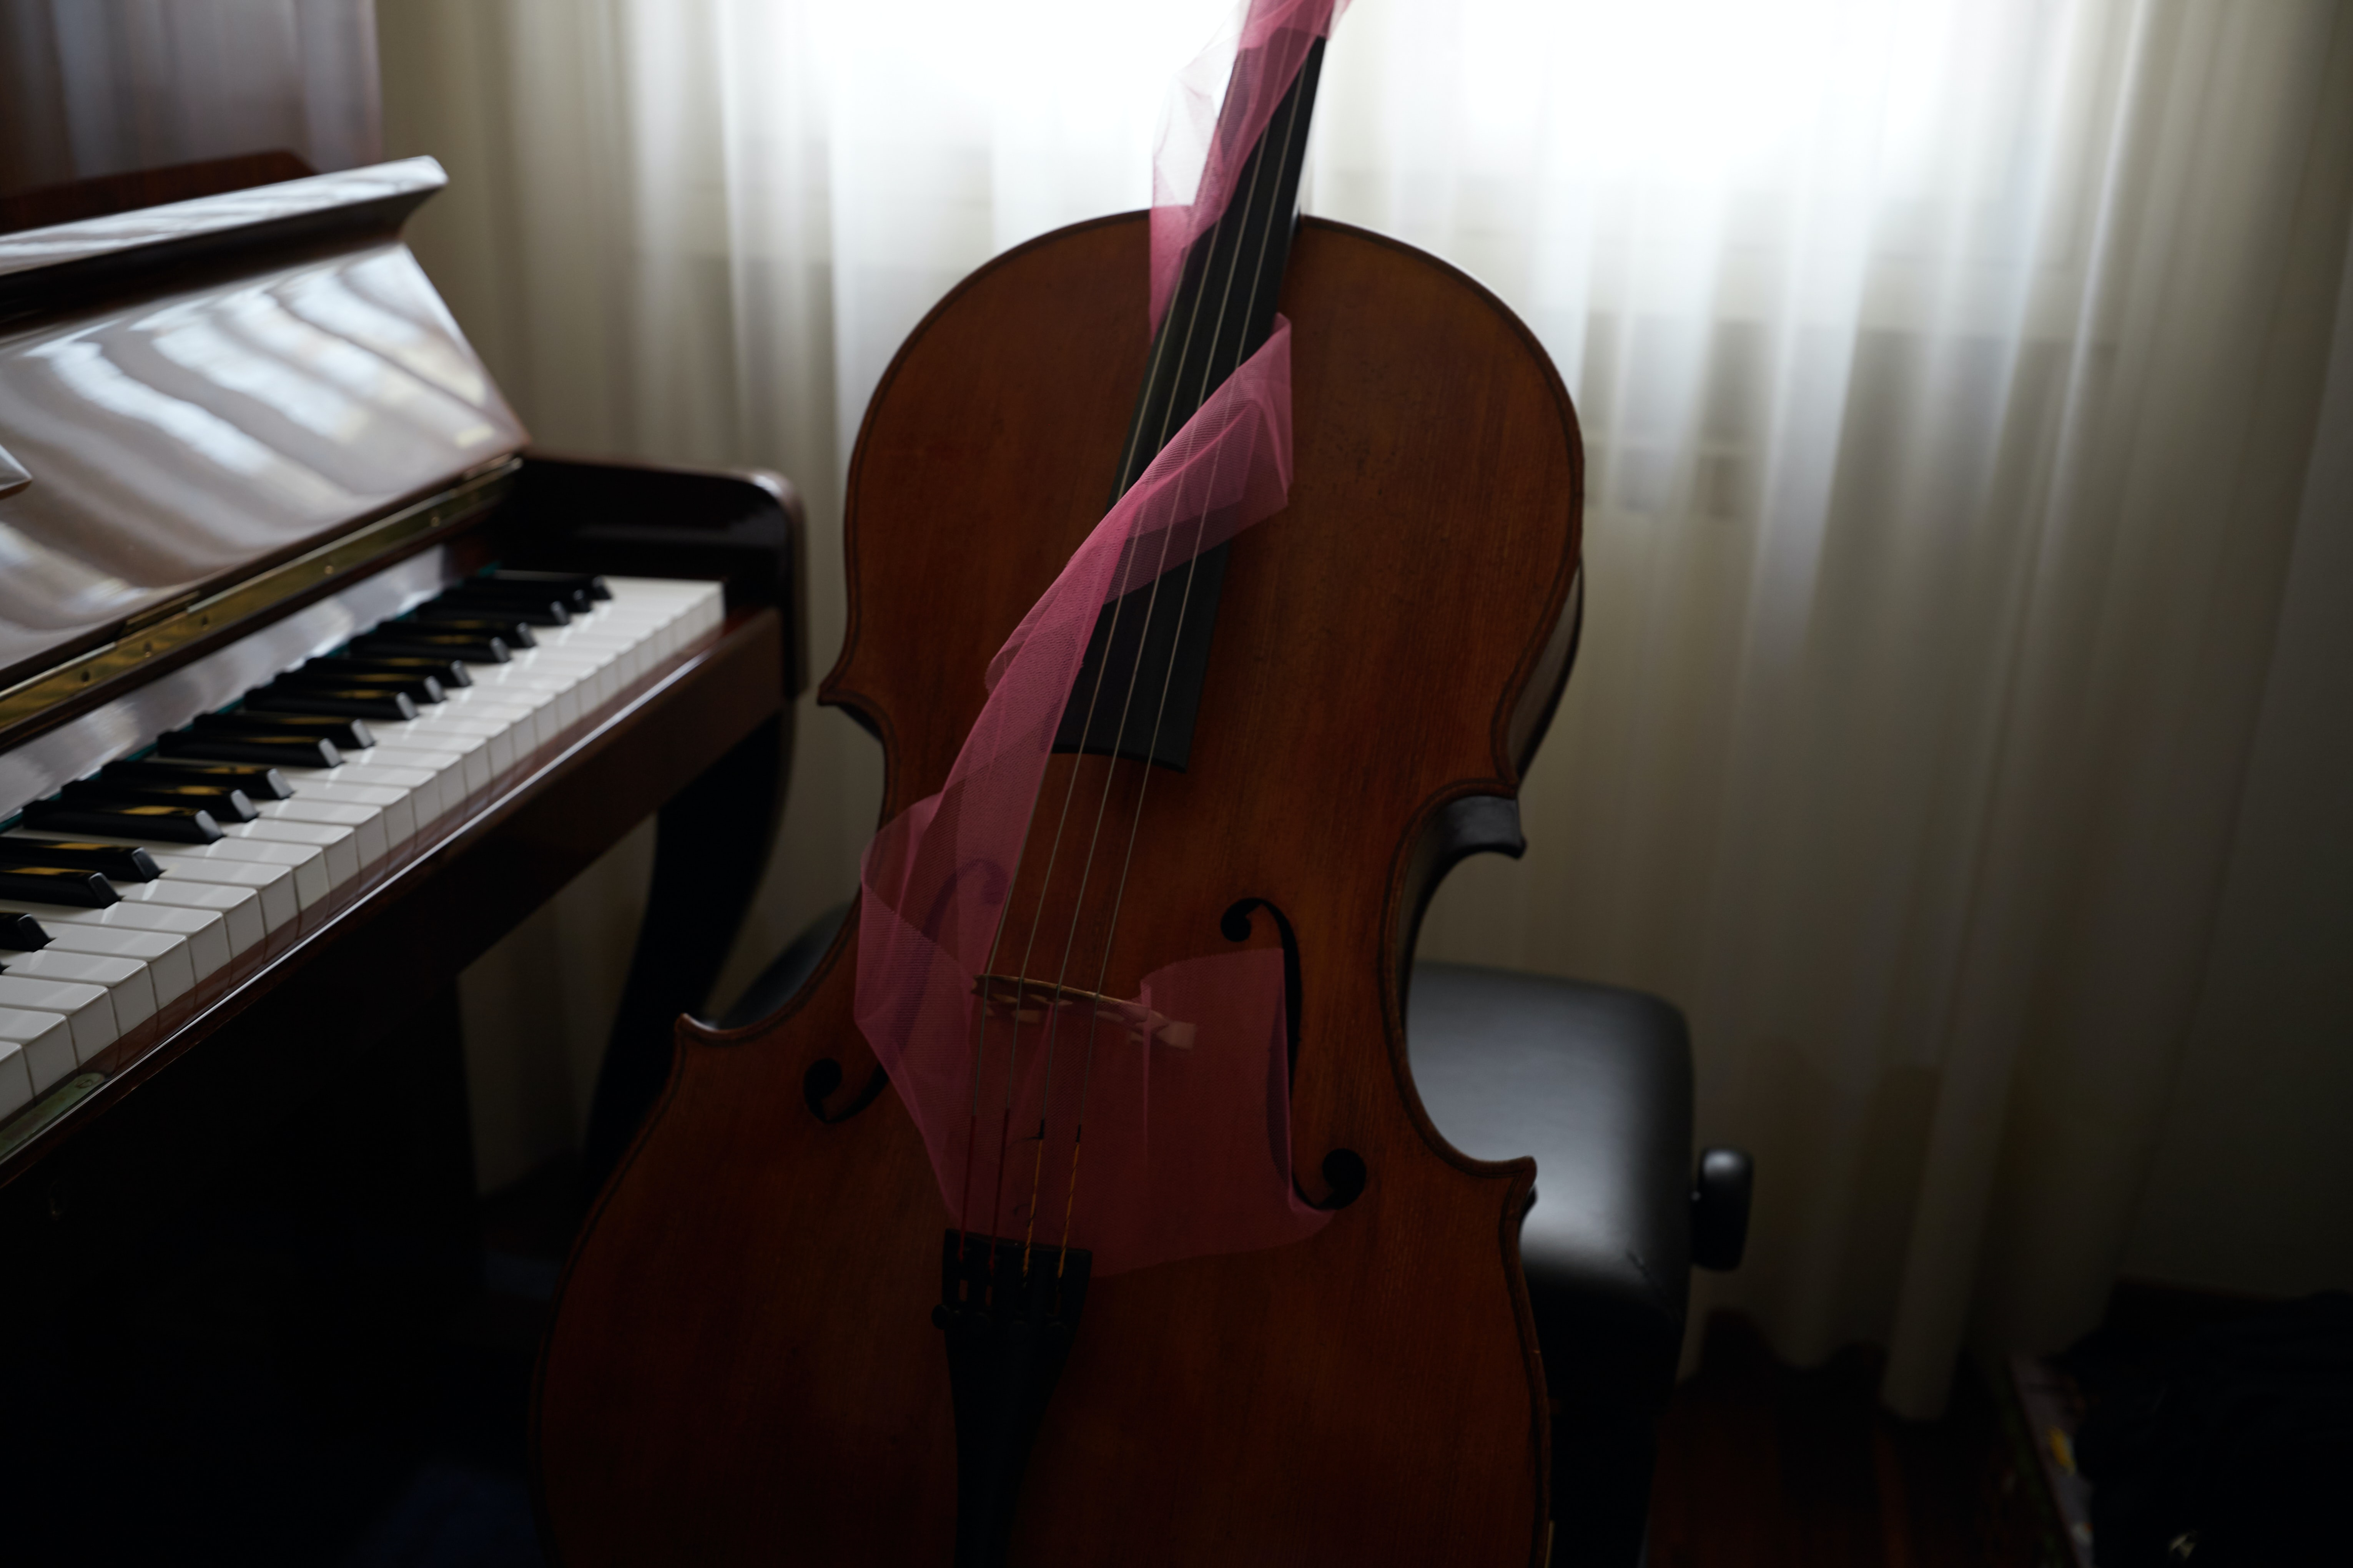 brown violin beside spinet piano